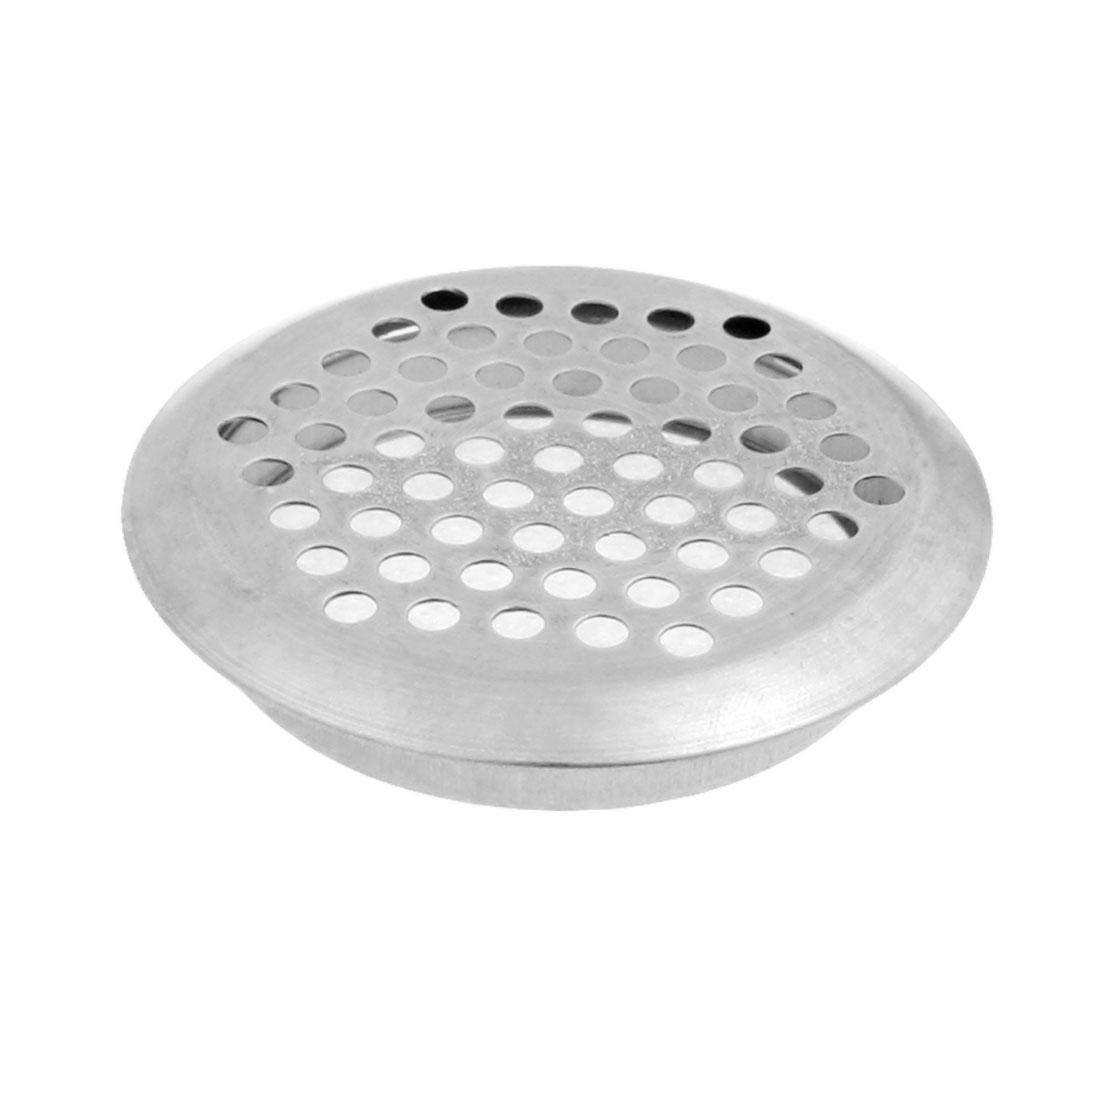 "Home Hardware 2 1/2"" Diameter Metal Round Air Vent Louver"